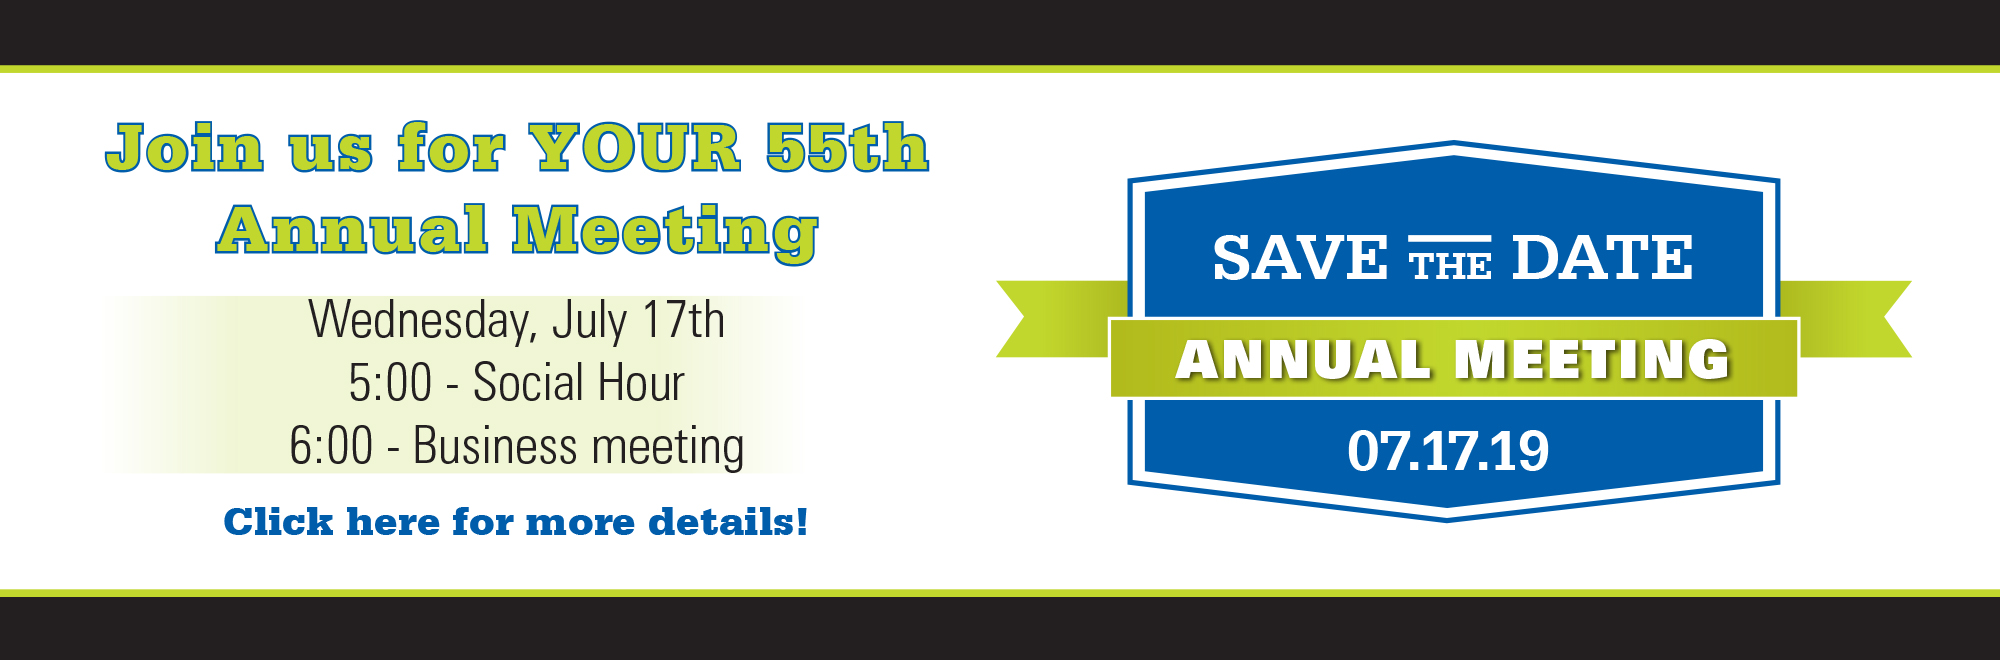 Join us for your 55th annual meeting on wednesday, june 17th.